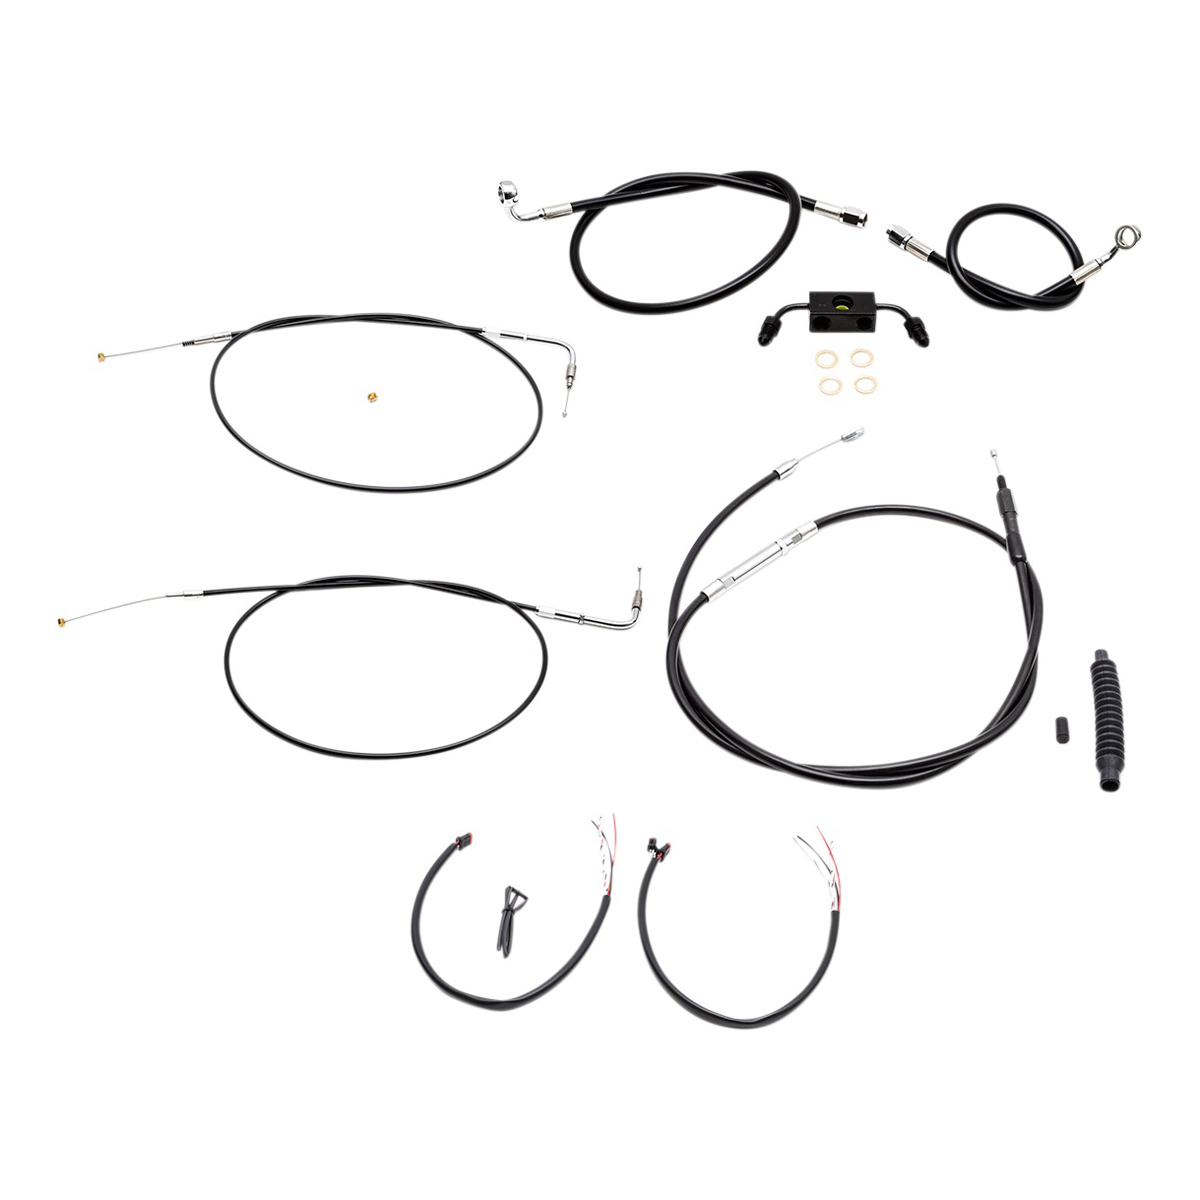 LA Choppers Black Complete Cable/Line/Wiring Handlebar Kit